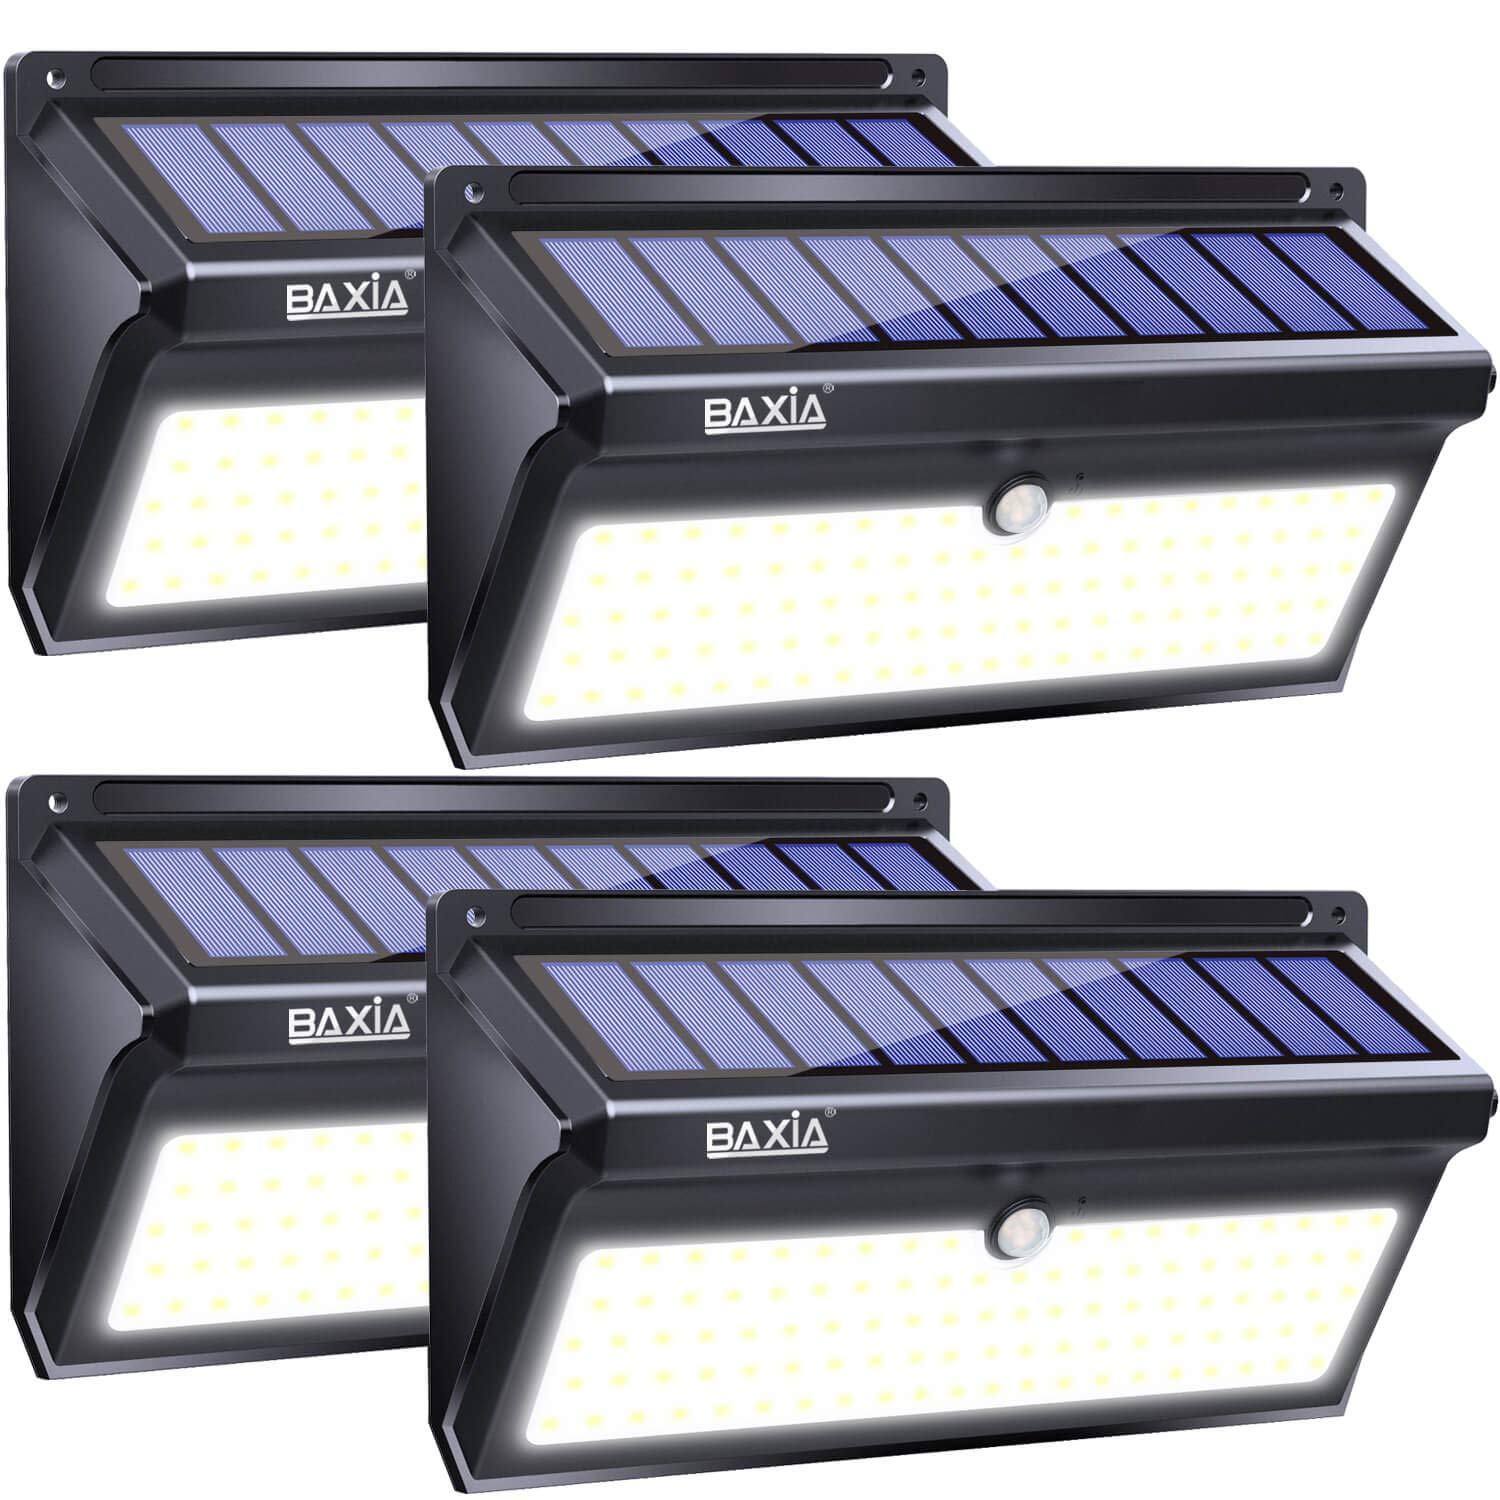 BAXIA TECHNOLOGY Solar Lights Outdoor, Wireless 100 LED Solar Motion Sensor Lights Waterproof Security Wall Lighting Outside for Front Door, Backyard, Steps, Garage, Garden (2000LM, 4PACK) by BAXIA TECHNOLOGY